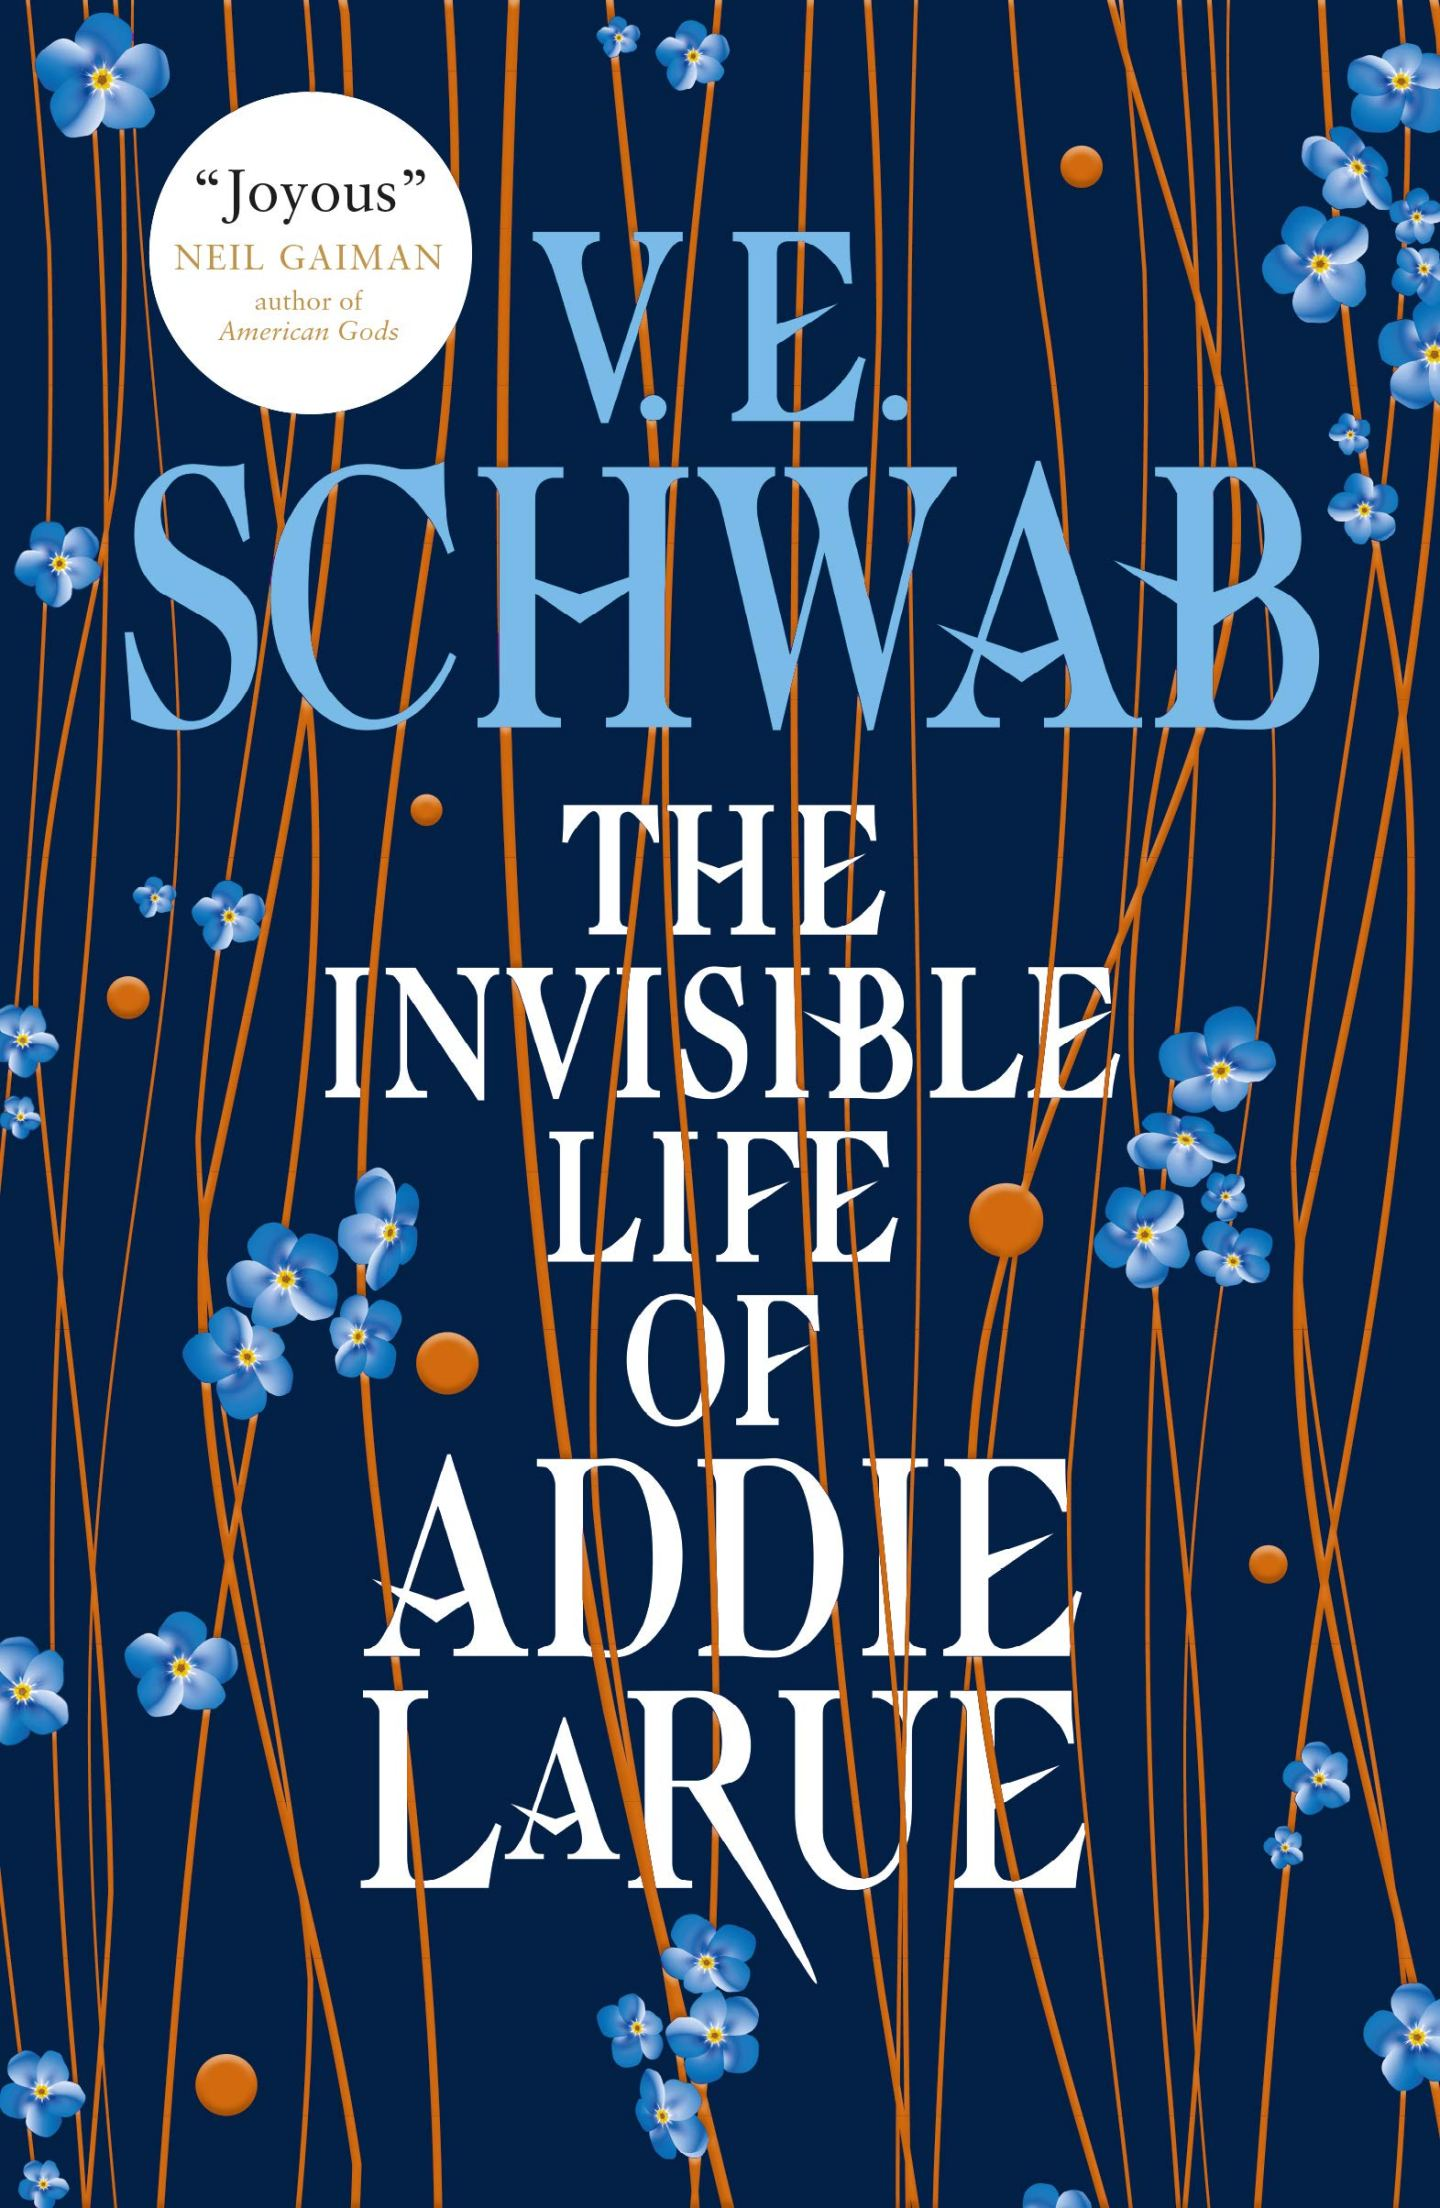 The Invisible Life of Addie LaRue V.E. Schwab